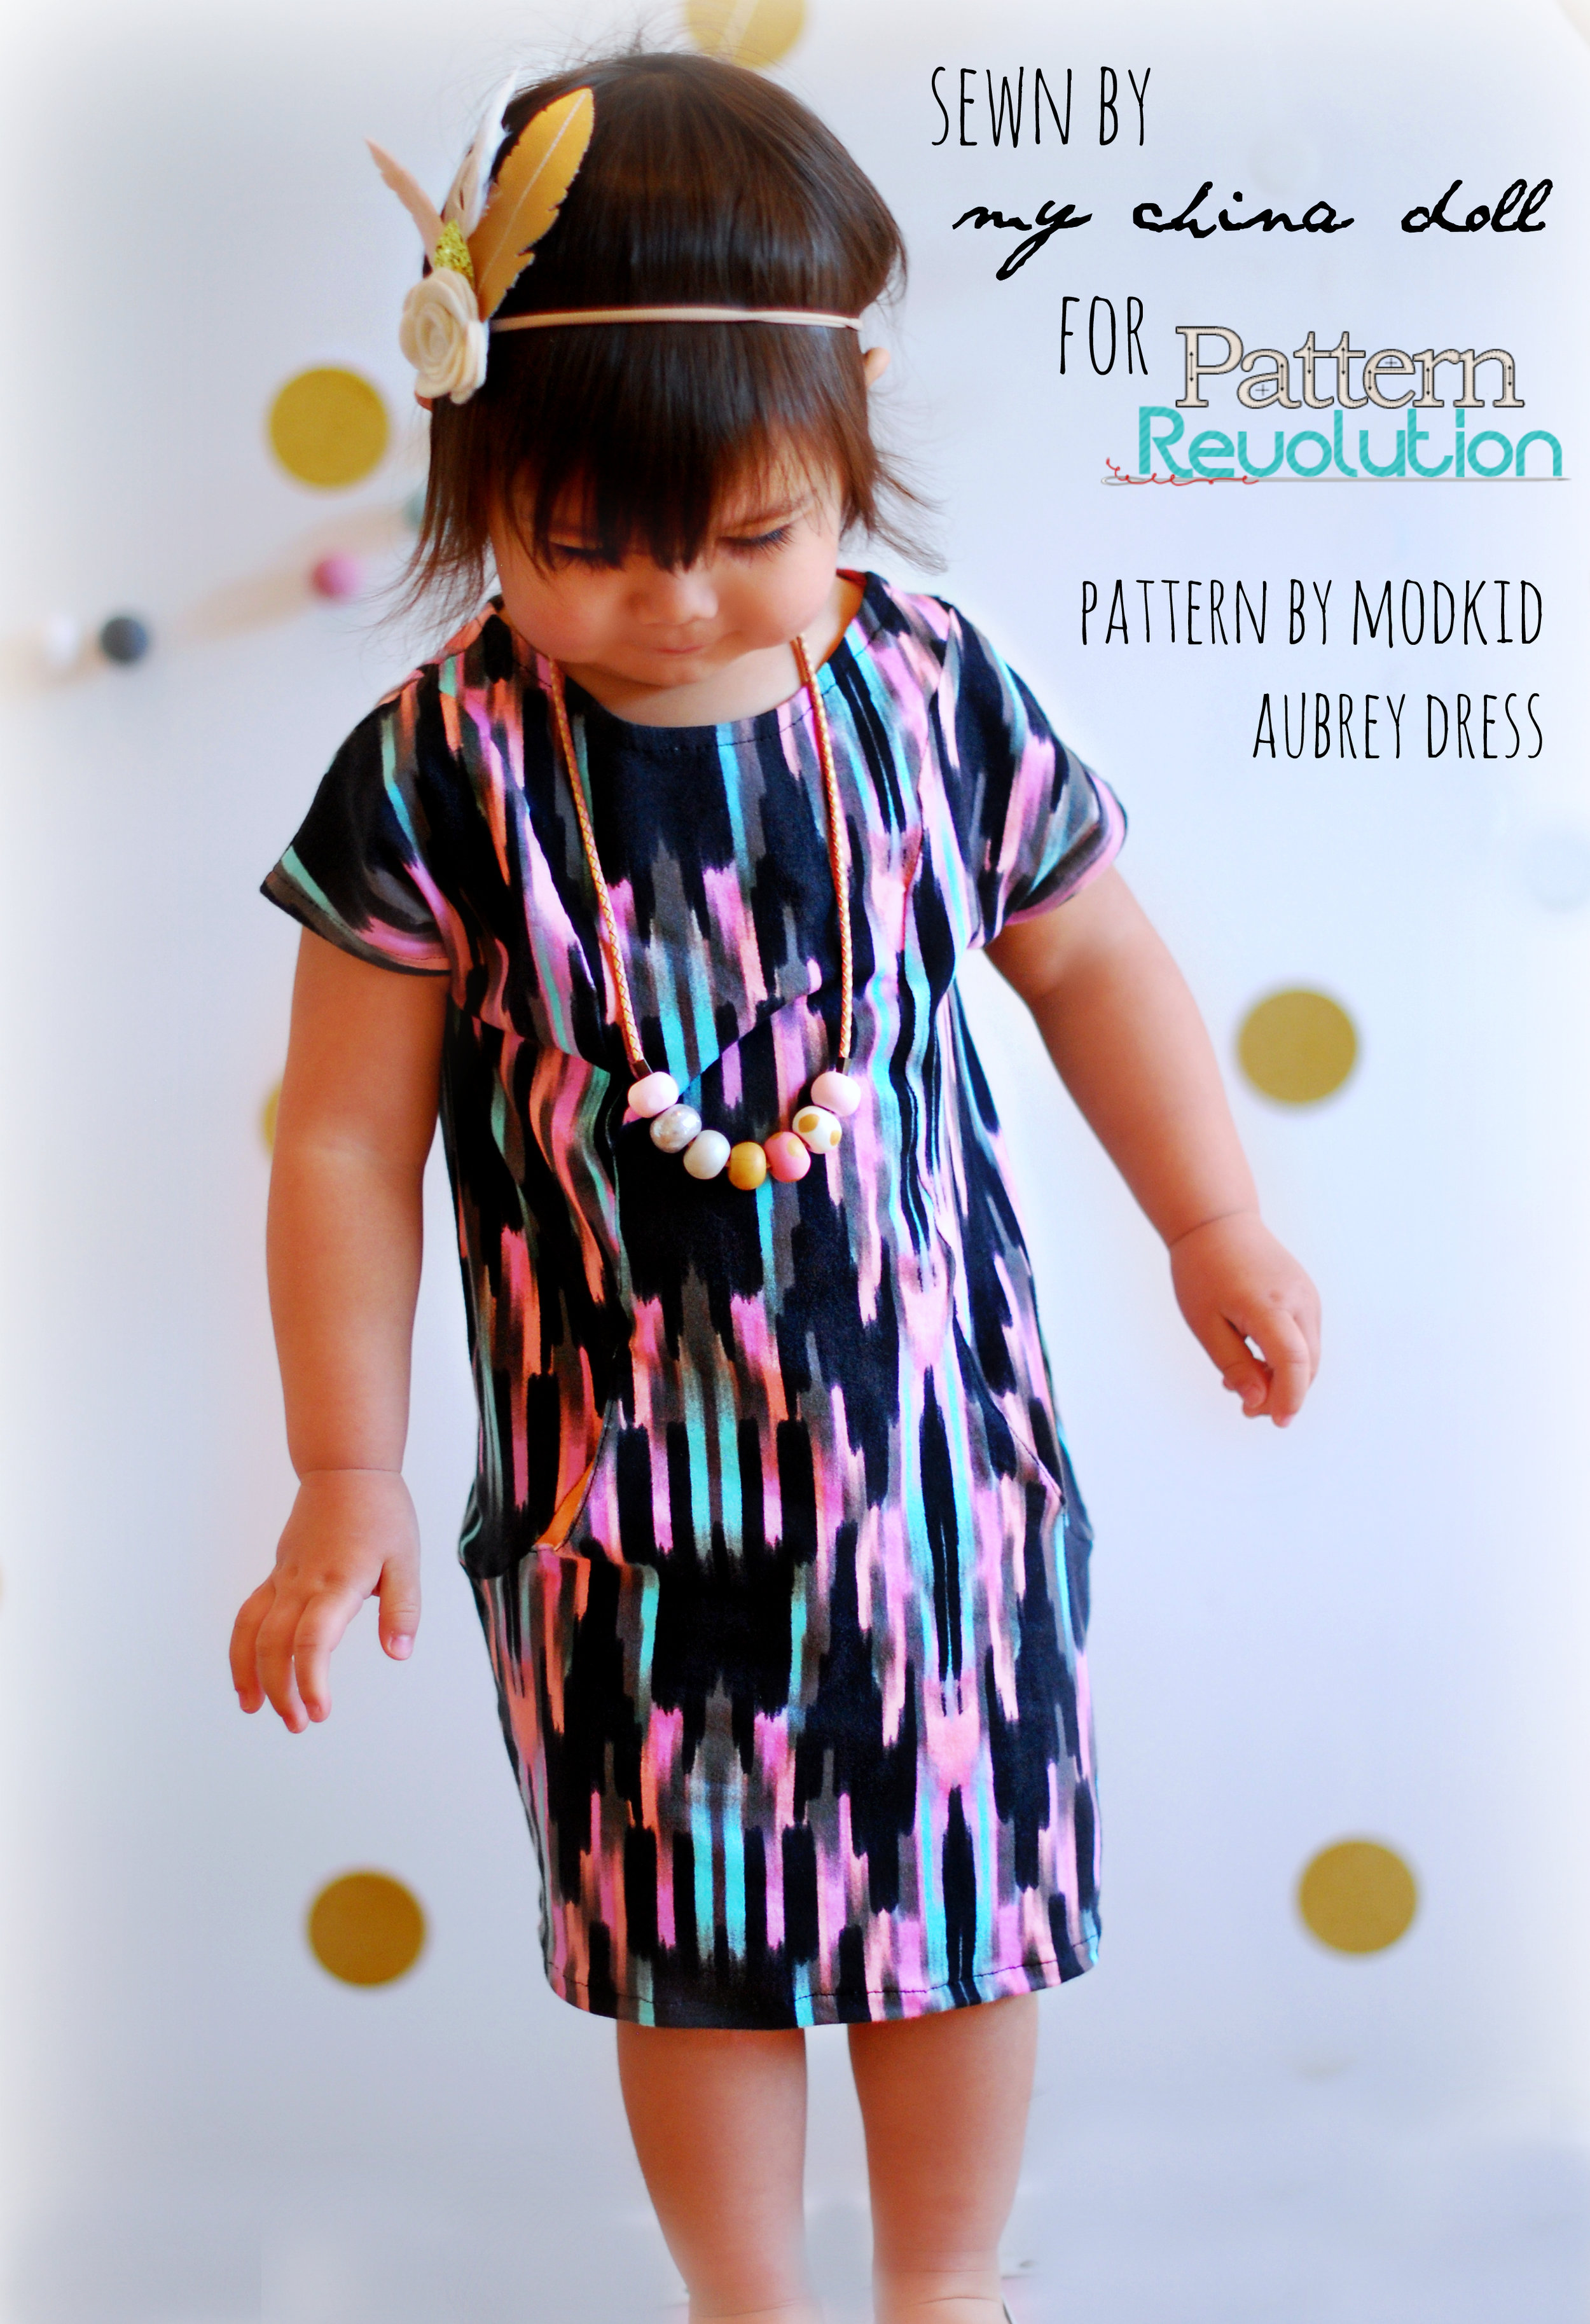 aubrey dress cover page.jpg